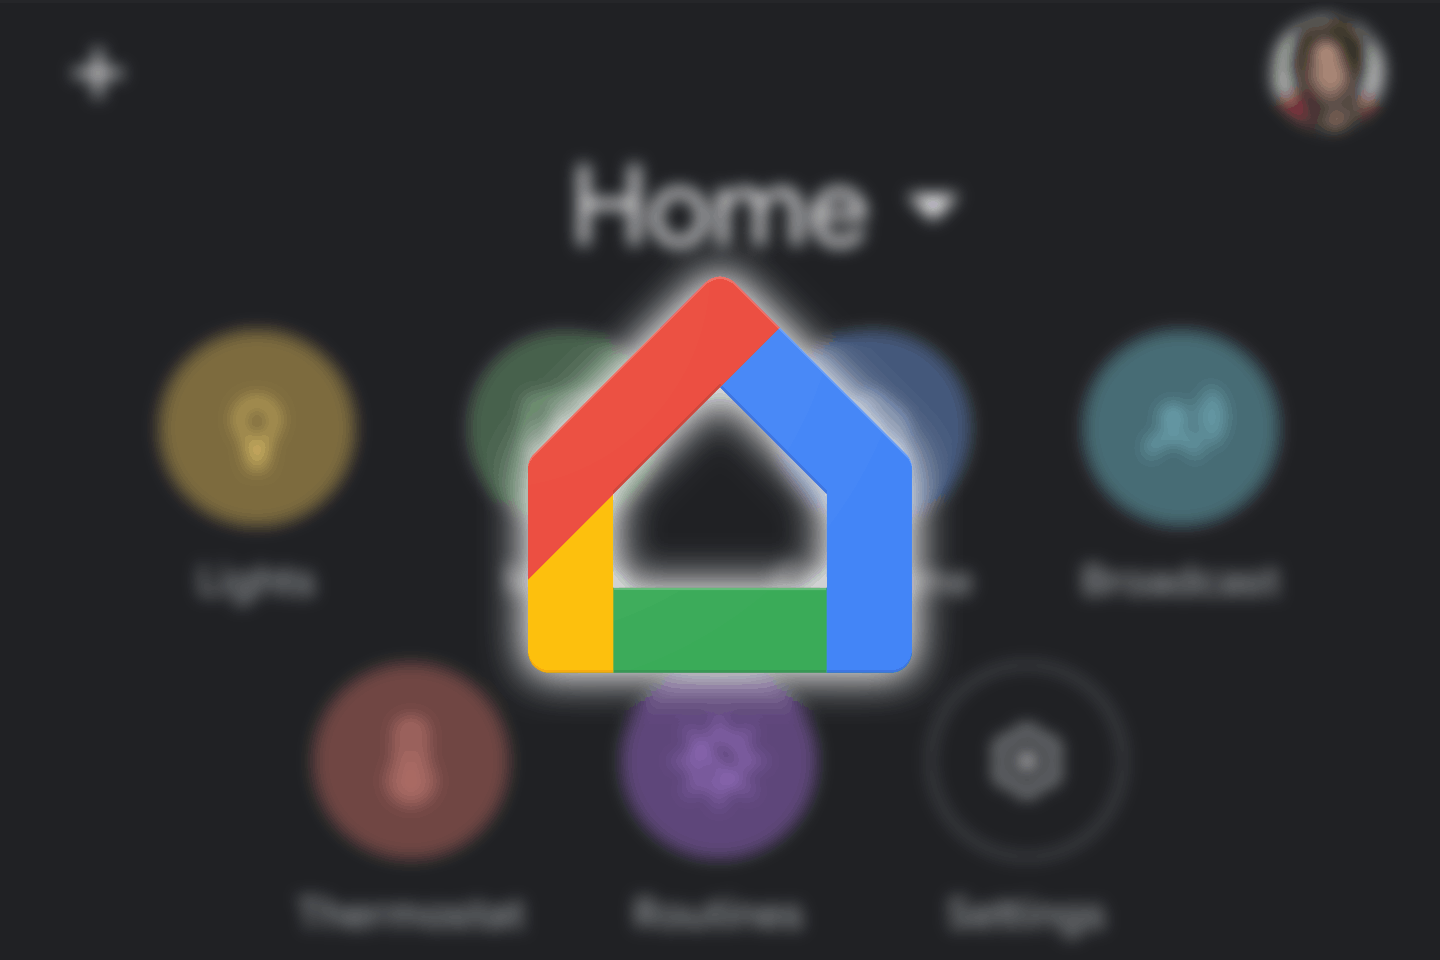 Learn How To Download Google Home App